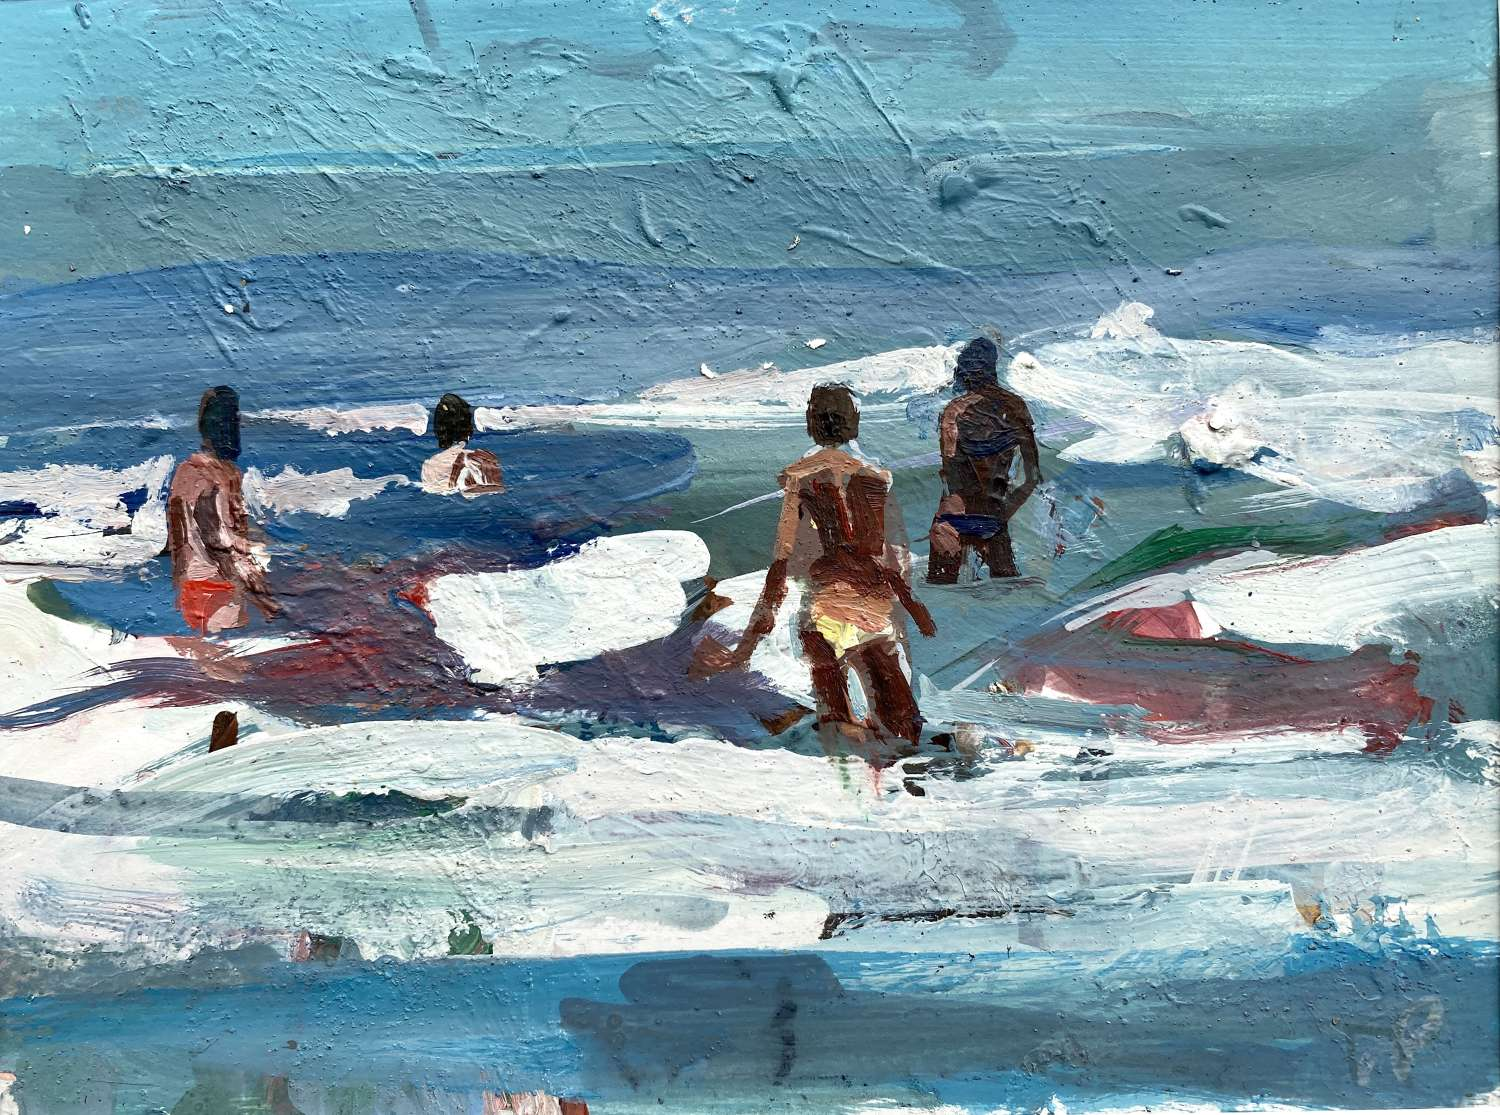 Into the Waves - Mark Pearson